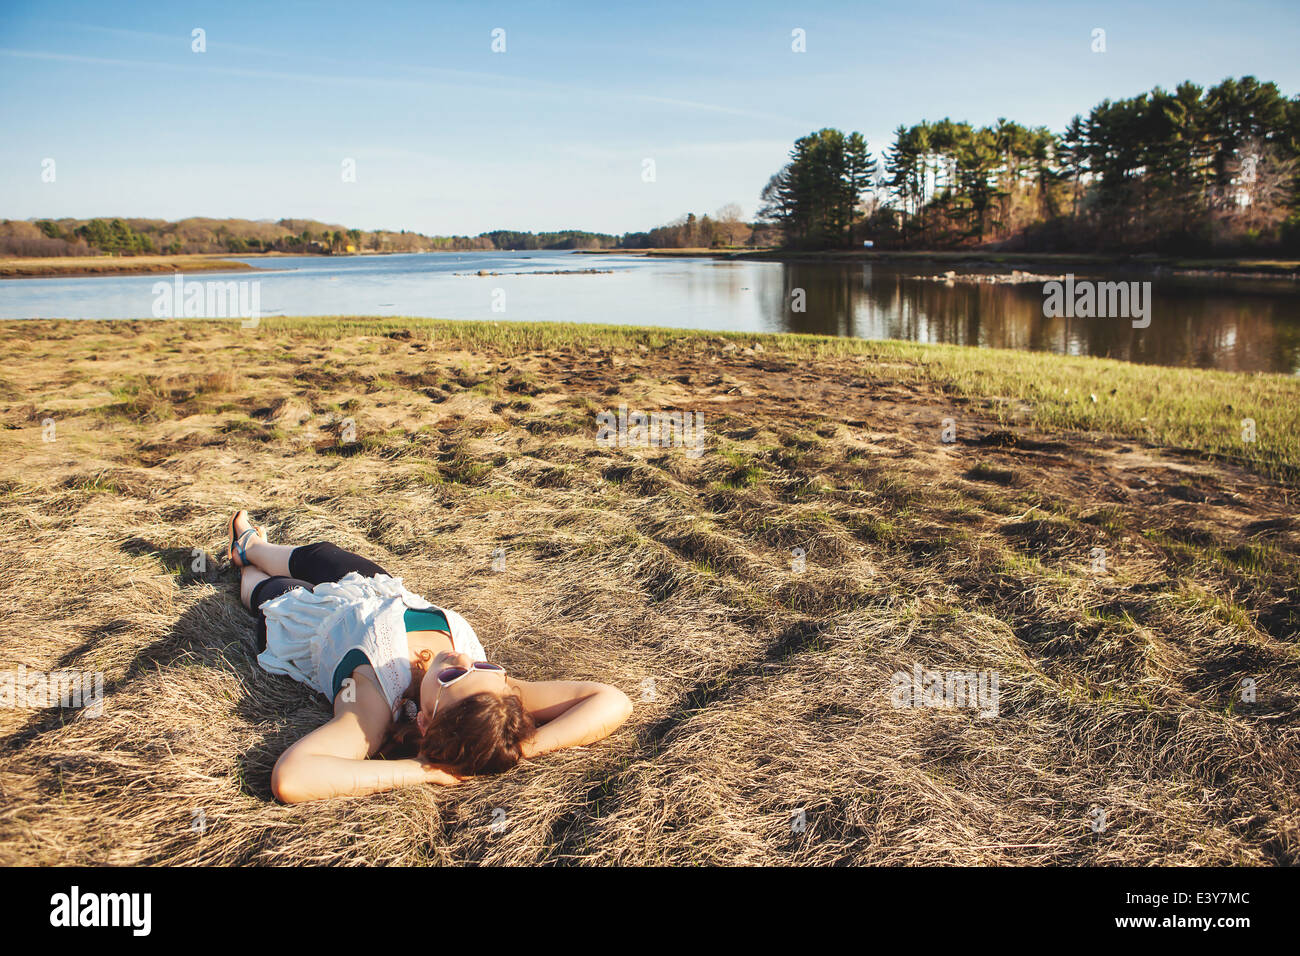 Young woman sunbathing on grass in Kittery, Maine, USA - Stock Image